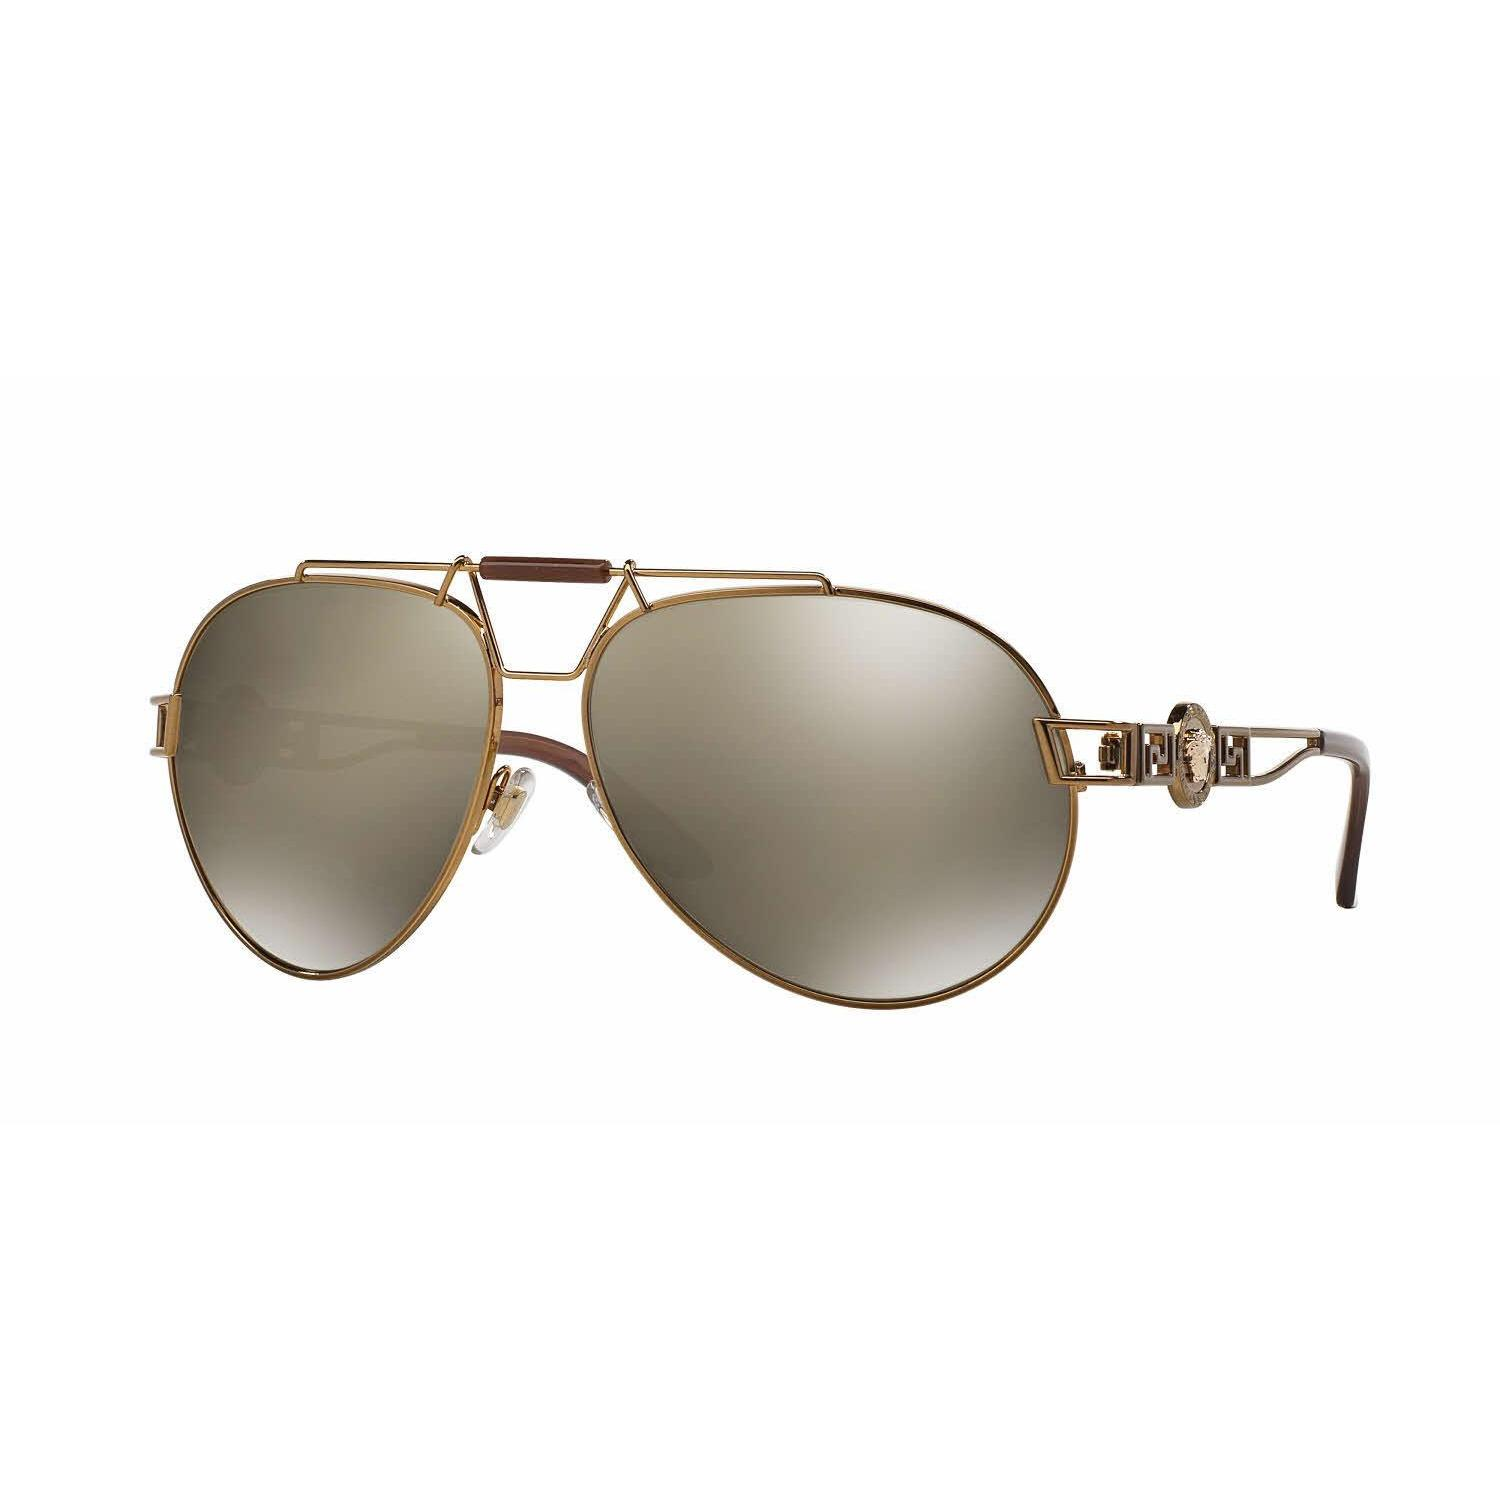 d538f25cc8e Shop Versace Women VE2160 13485A Bronze Copper Cateye Sunglasses - Free  Shipping Today - Overstock - 13322307